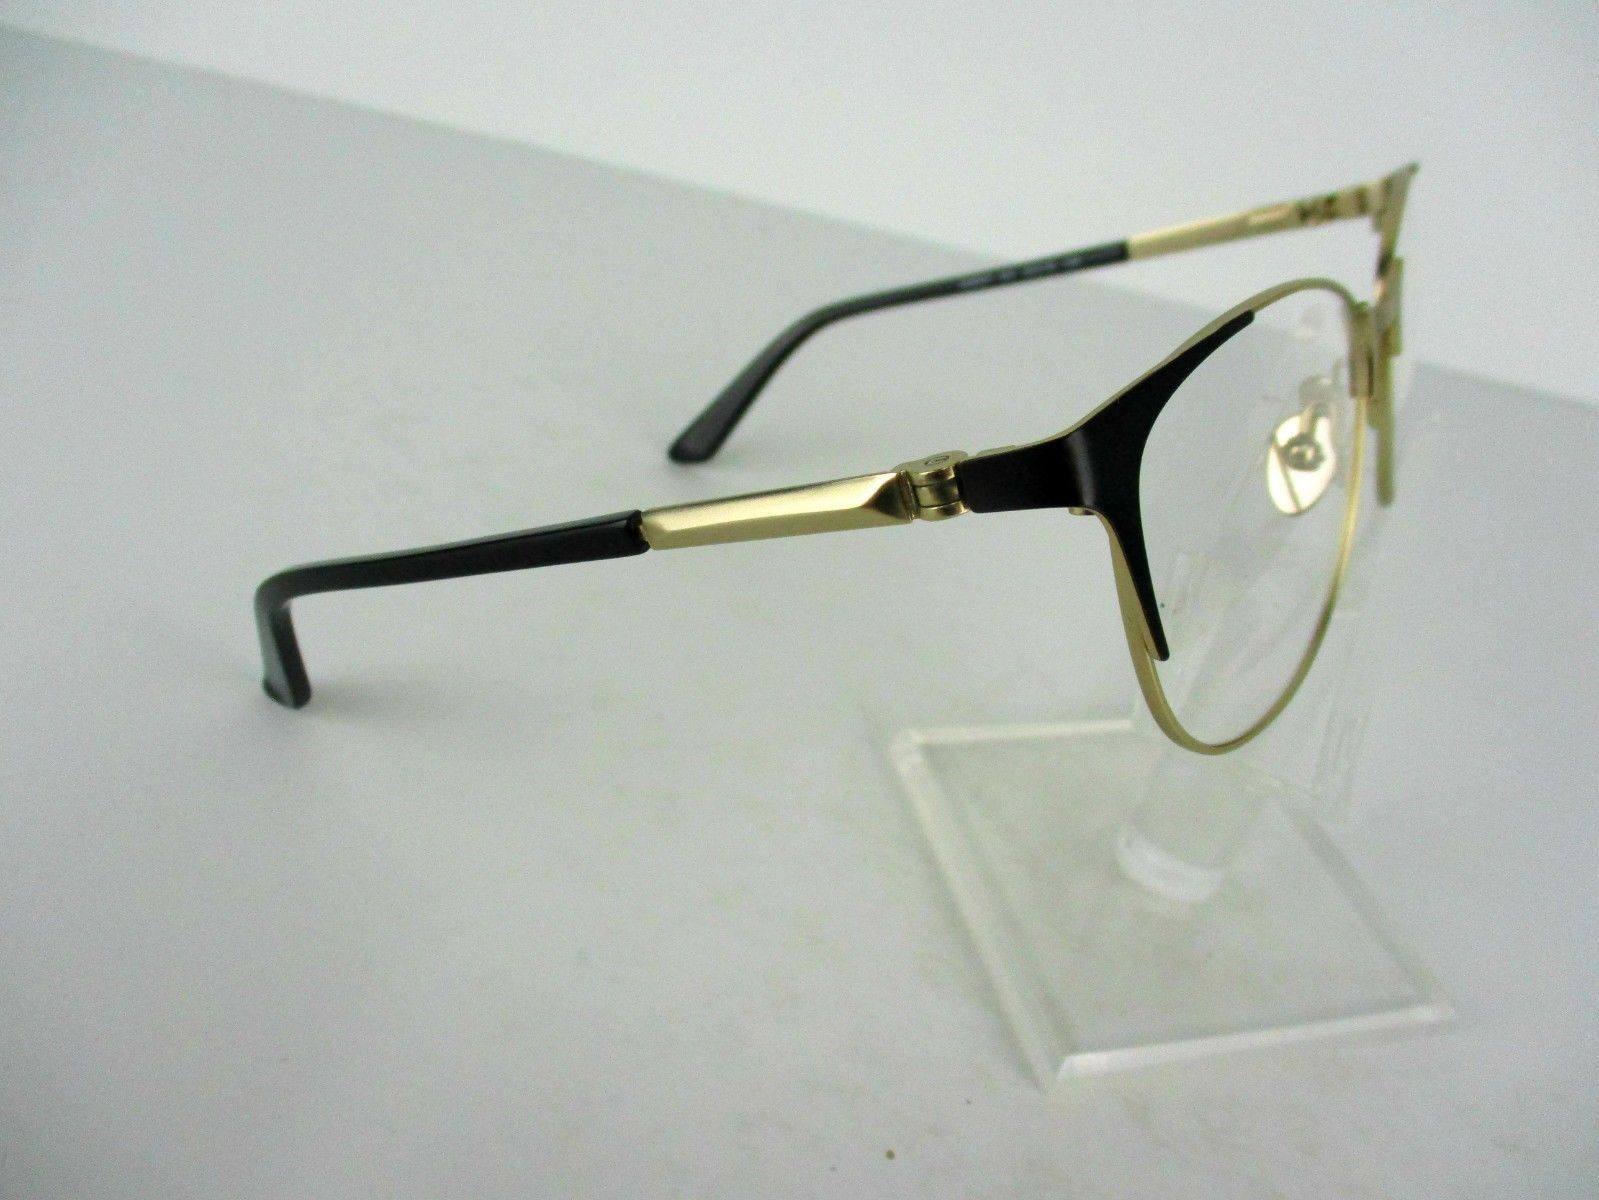 Calvin Klein Ck 8041 (001) Black / Gold 53 X 16 135 mm Eyeglass Frame